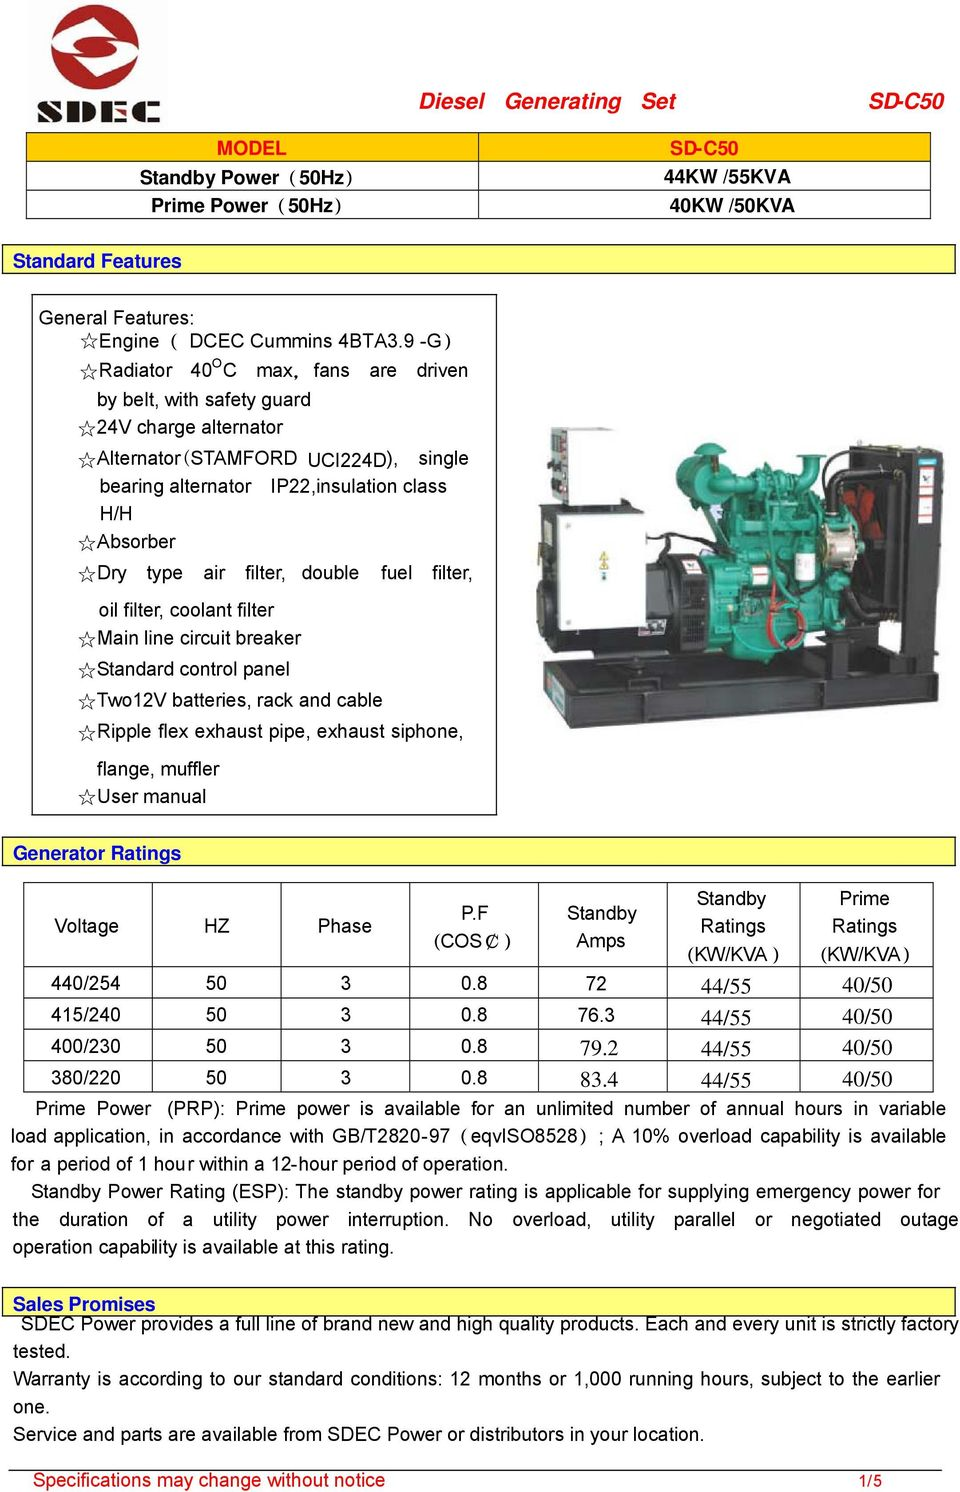 hight resolution of filter double fuel filter oil filter coolant filter main line circuit breaker standard